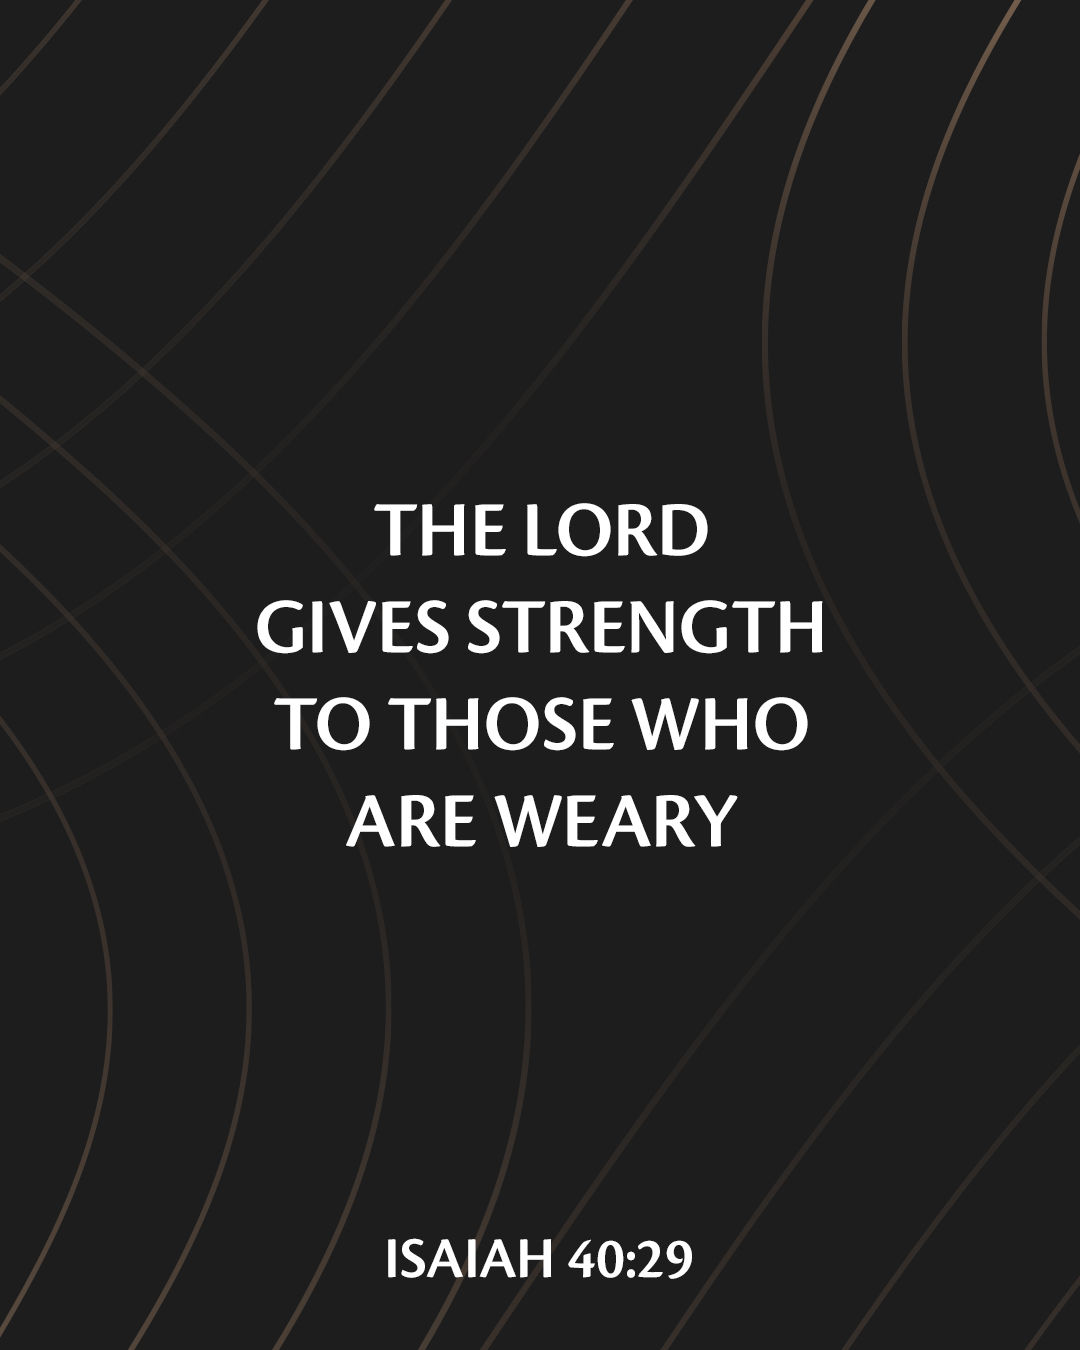 He Gives Strength